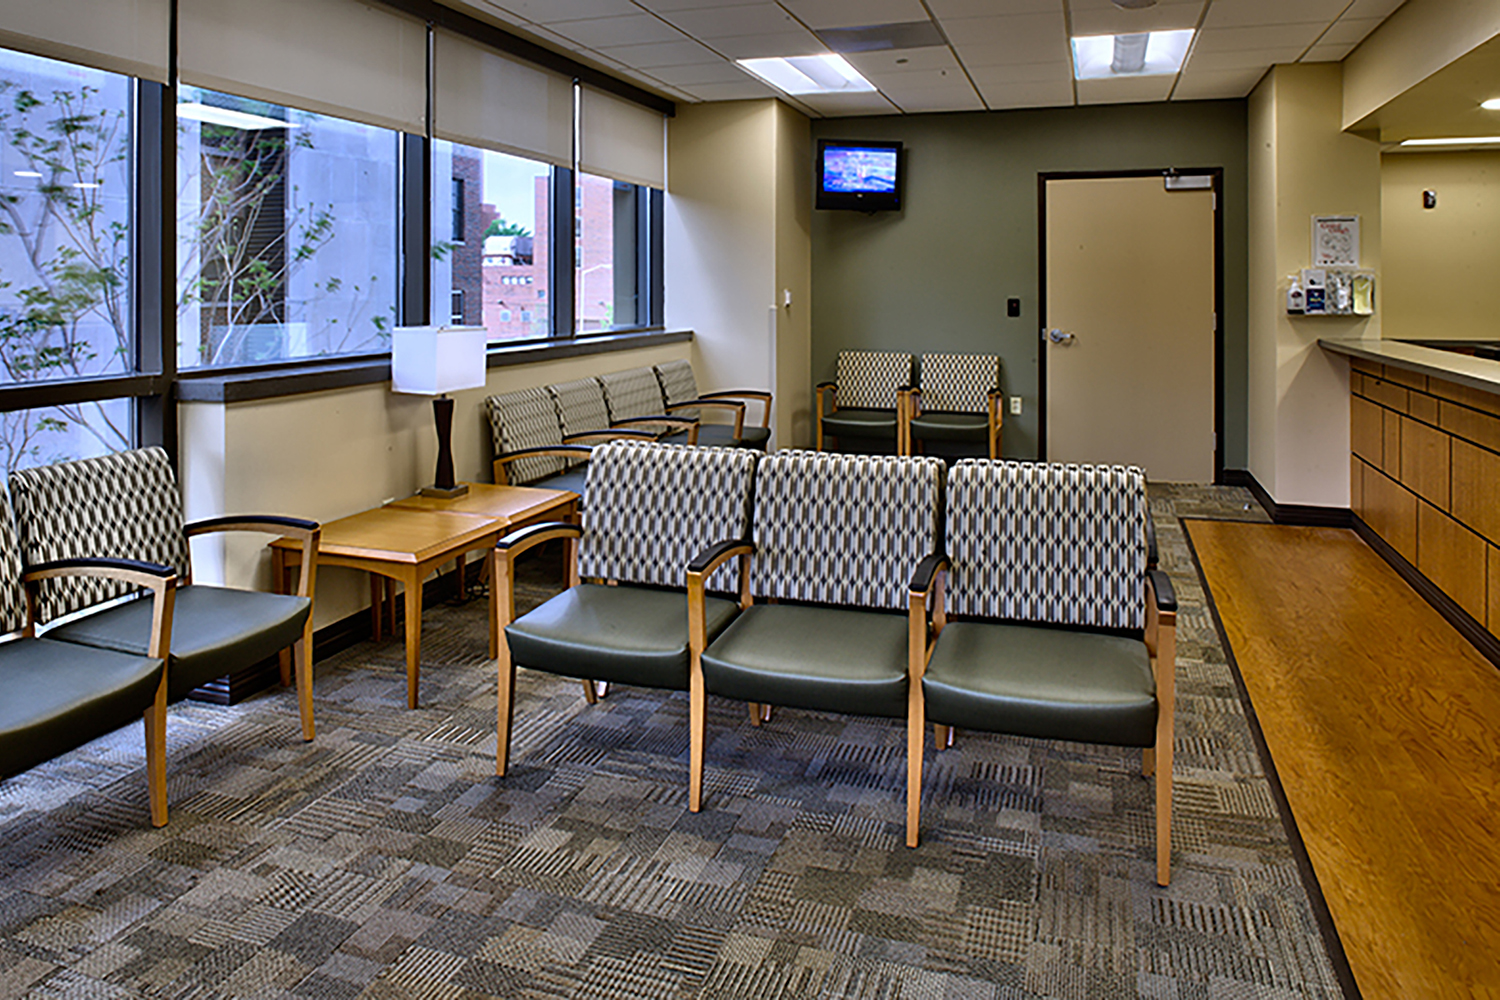 Regional One Health at Memphis, Tennessee Healthcare Construction - 04.jpg